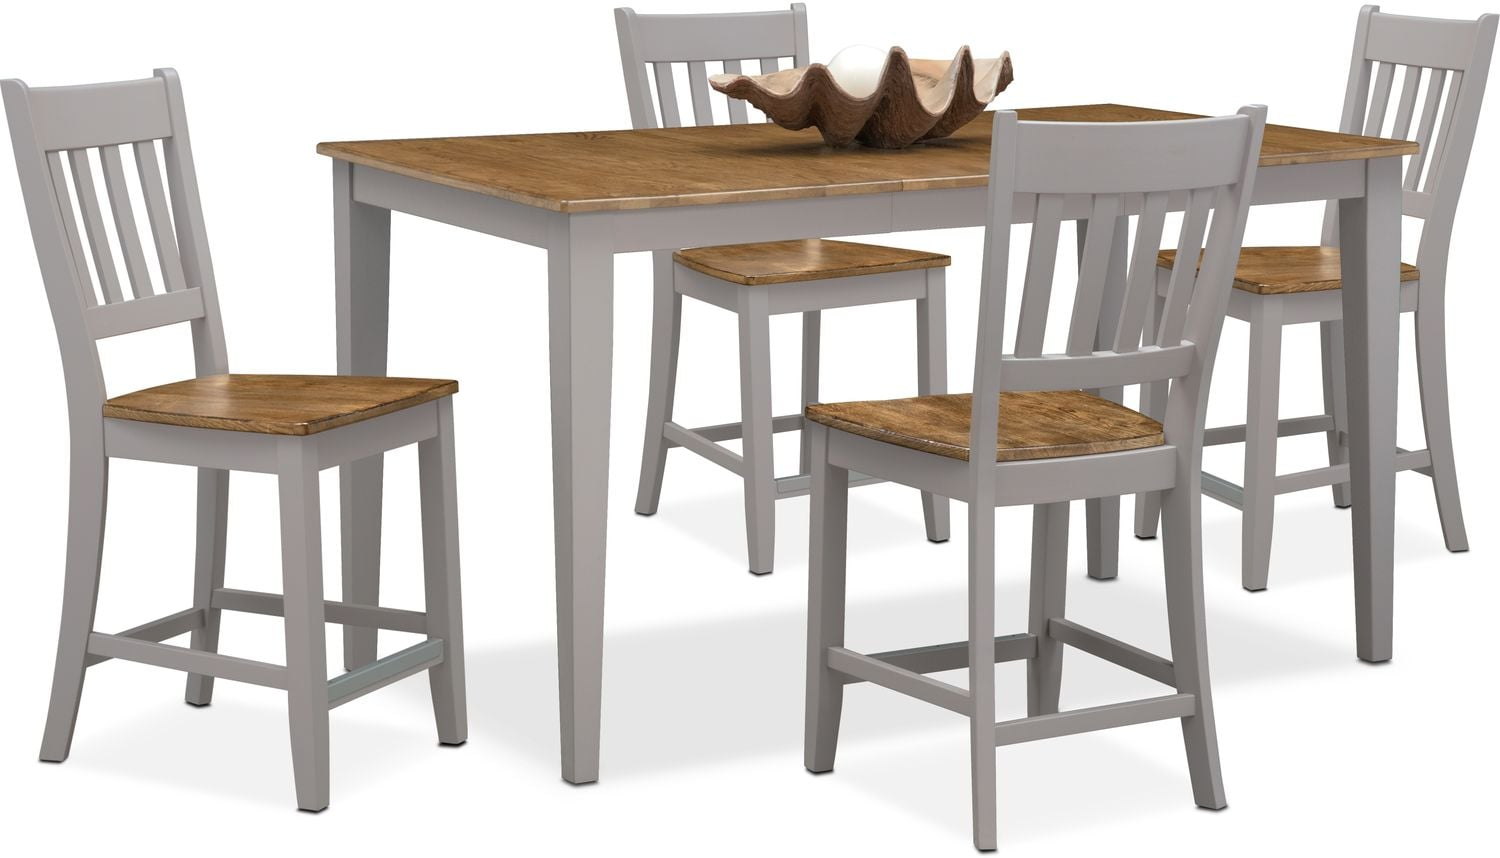 Dining Room Furniture - Nantucket Counter-Height Table and 4 Slat-Back Chairs